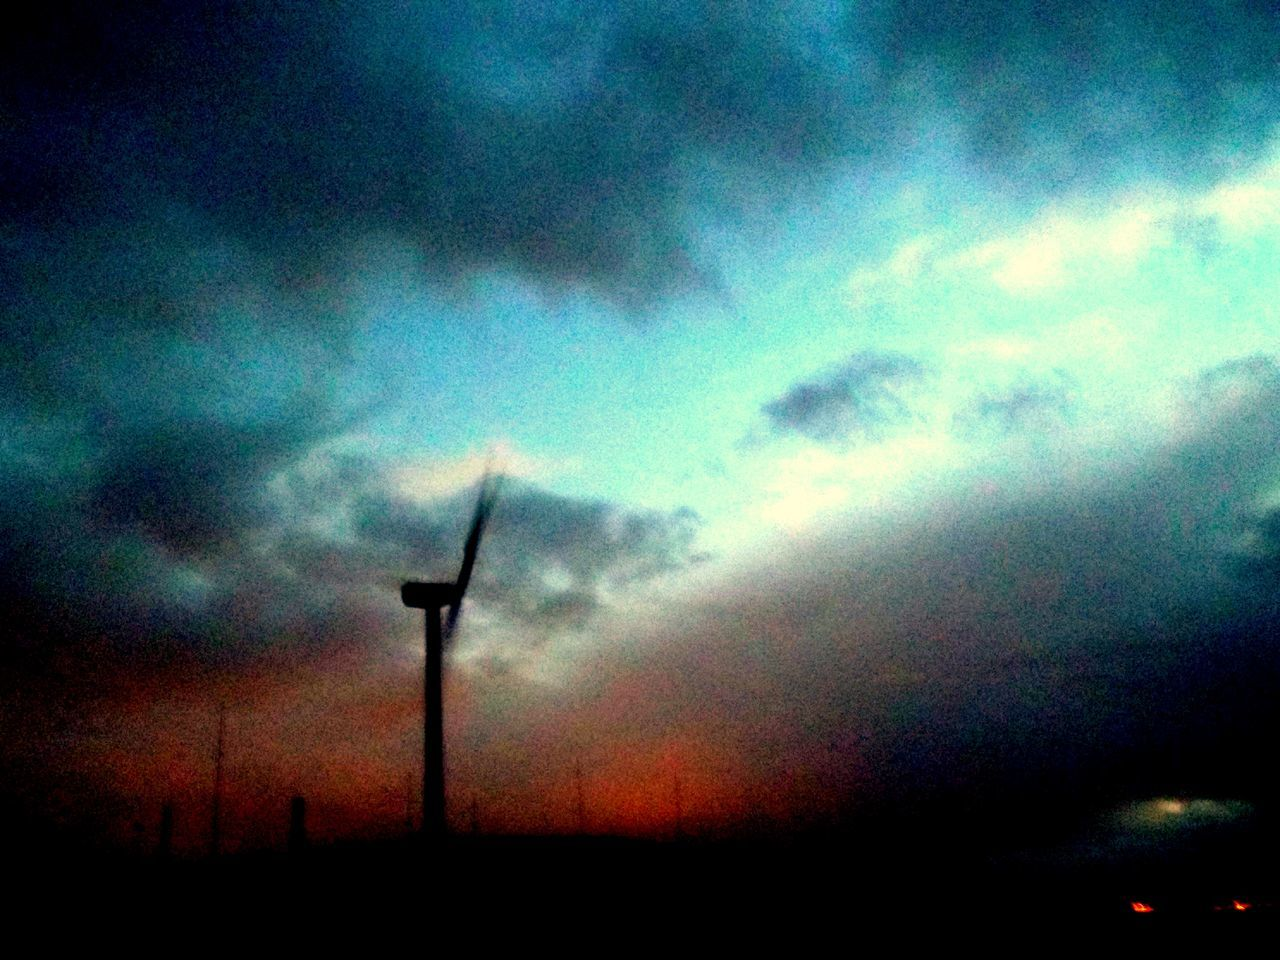 alternative energy, wind power, wind turbine, environmental conservation, fuel and power generation, renewable energy, windmill, industrial windmill, sky, cloud - sky, technology, low angle view, silhouette, nature, no people, outdoors, sunset, rural scene, scenics, beauty in nature, traditional windmill, day